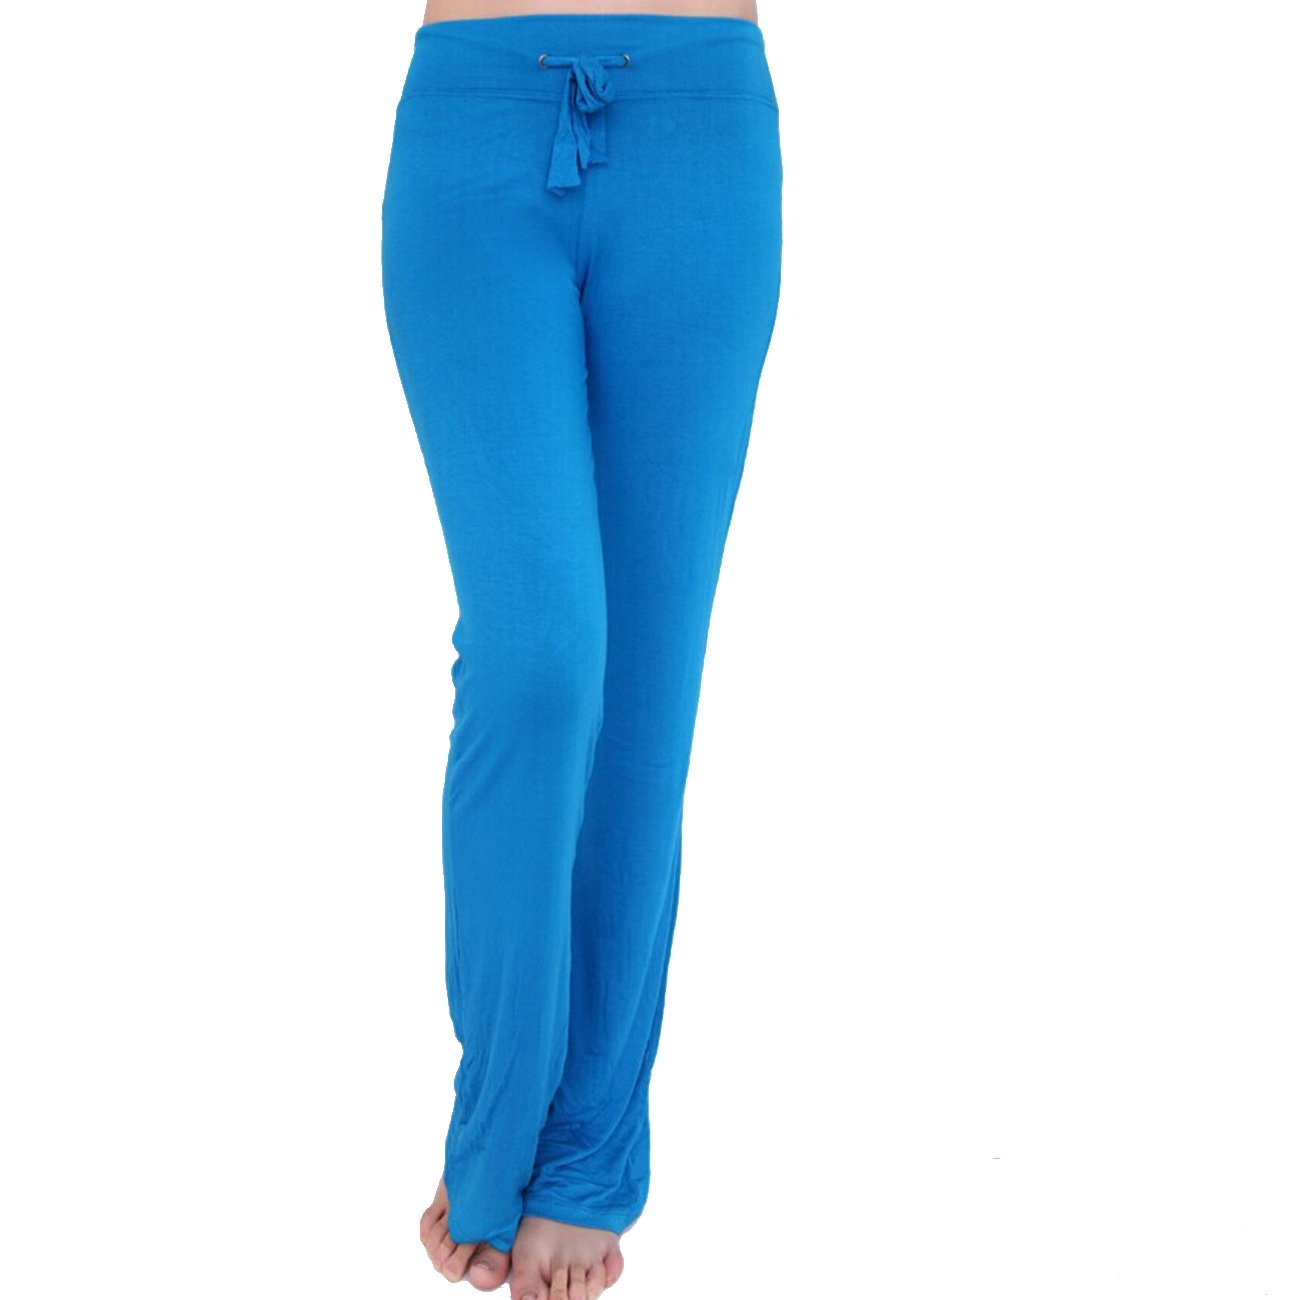 Dong Dian Women's Soft Slimming Gym Workout Yoga Bootleg Pants